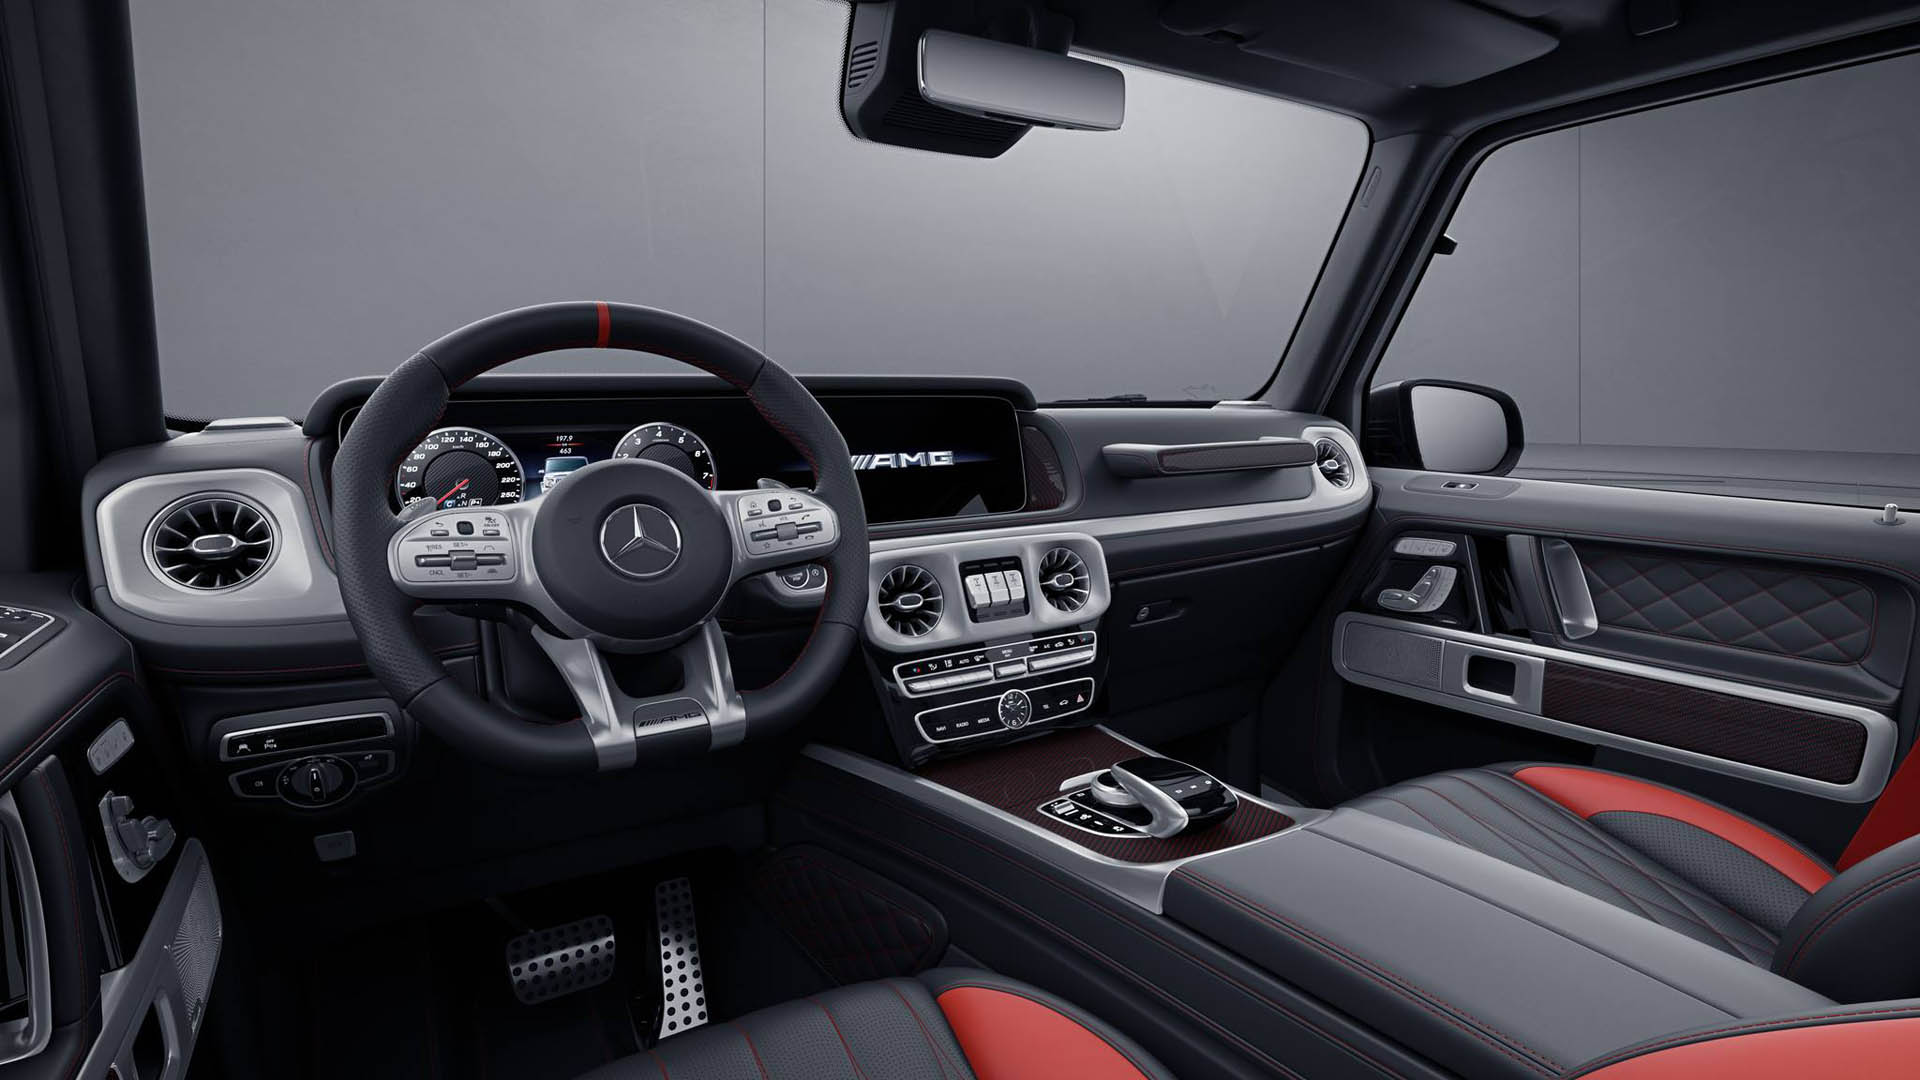 Mercedes AMG G63 Edition 1 Pops Up In Black Autoevolution